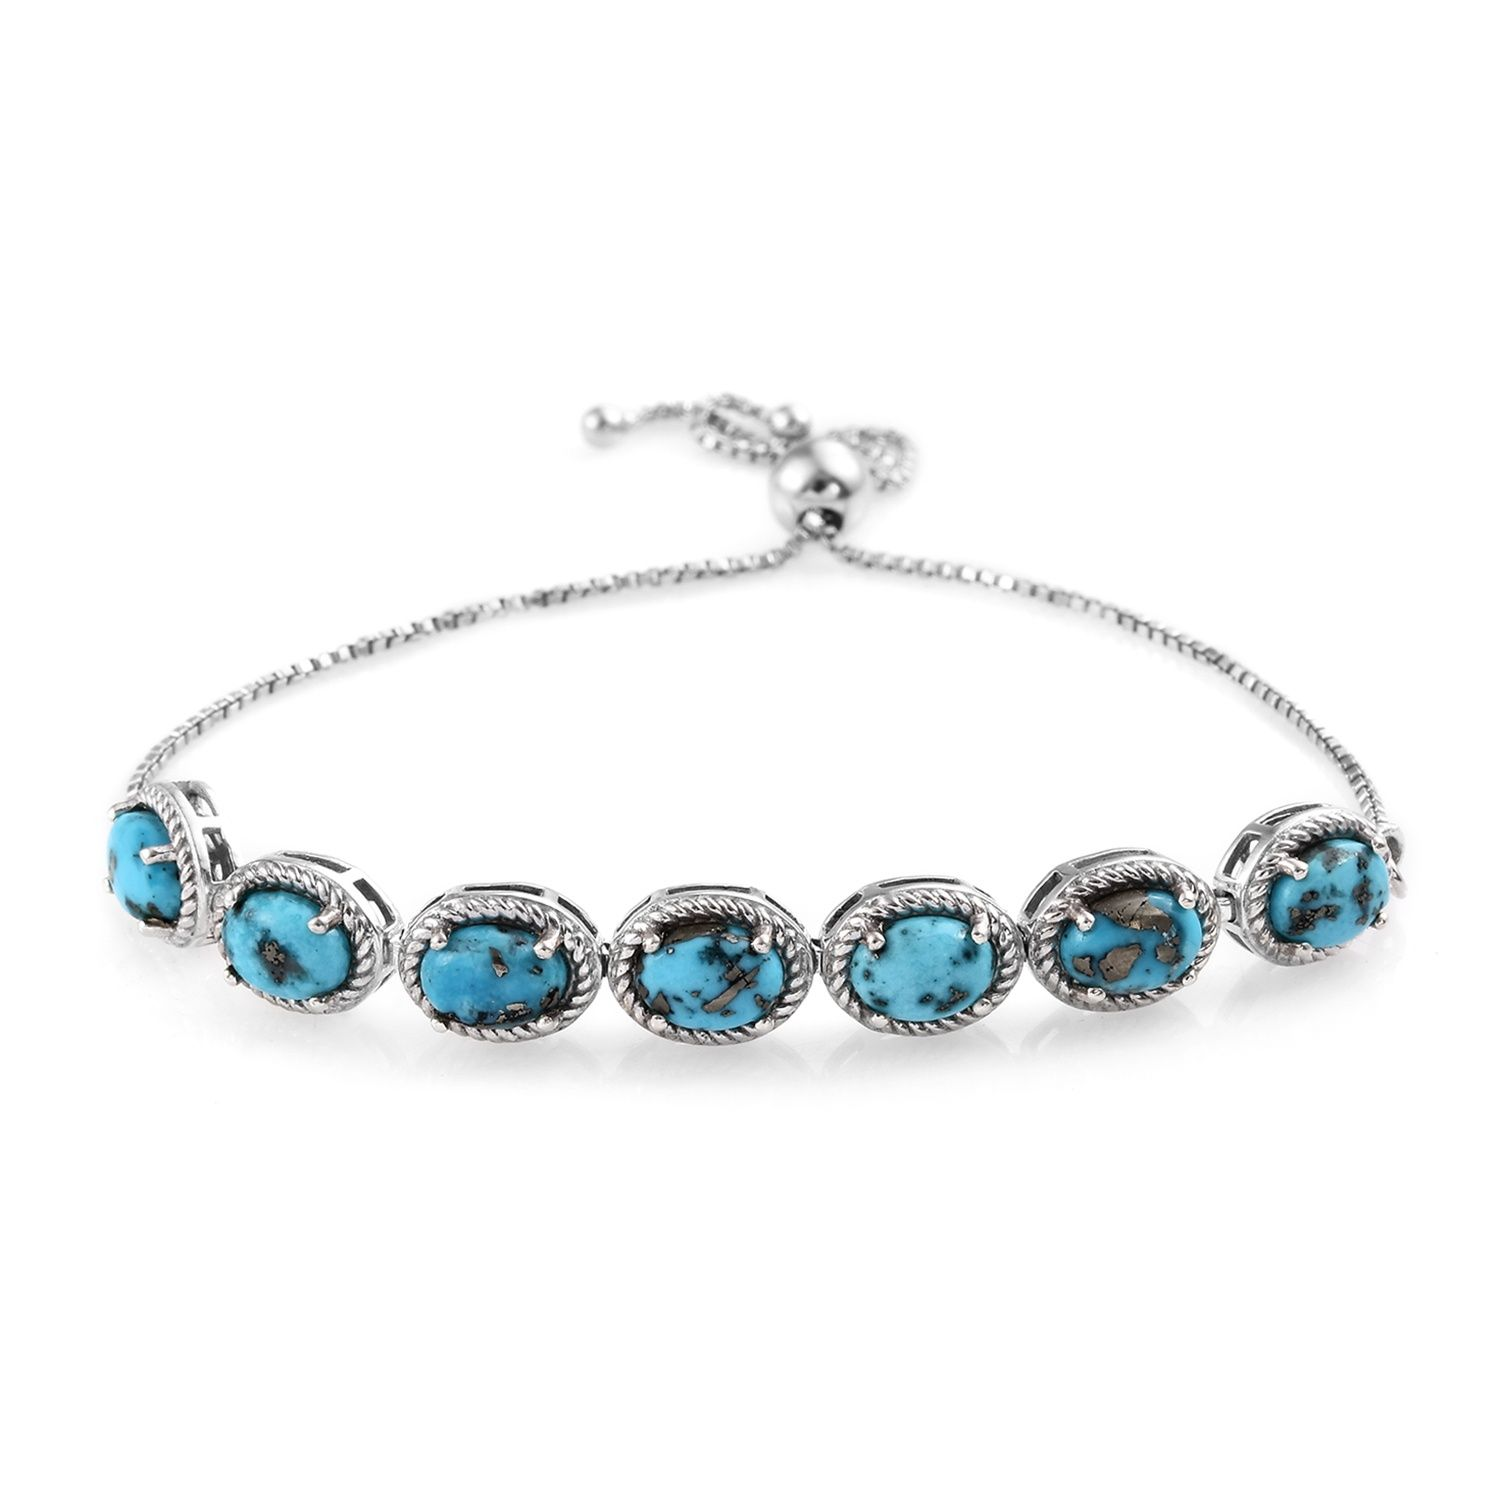 Turquoise Bolo Bracelet in Platinum Over Sterling Silver